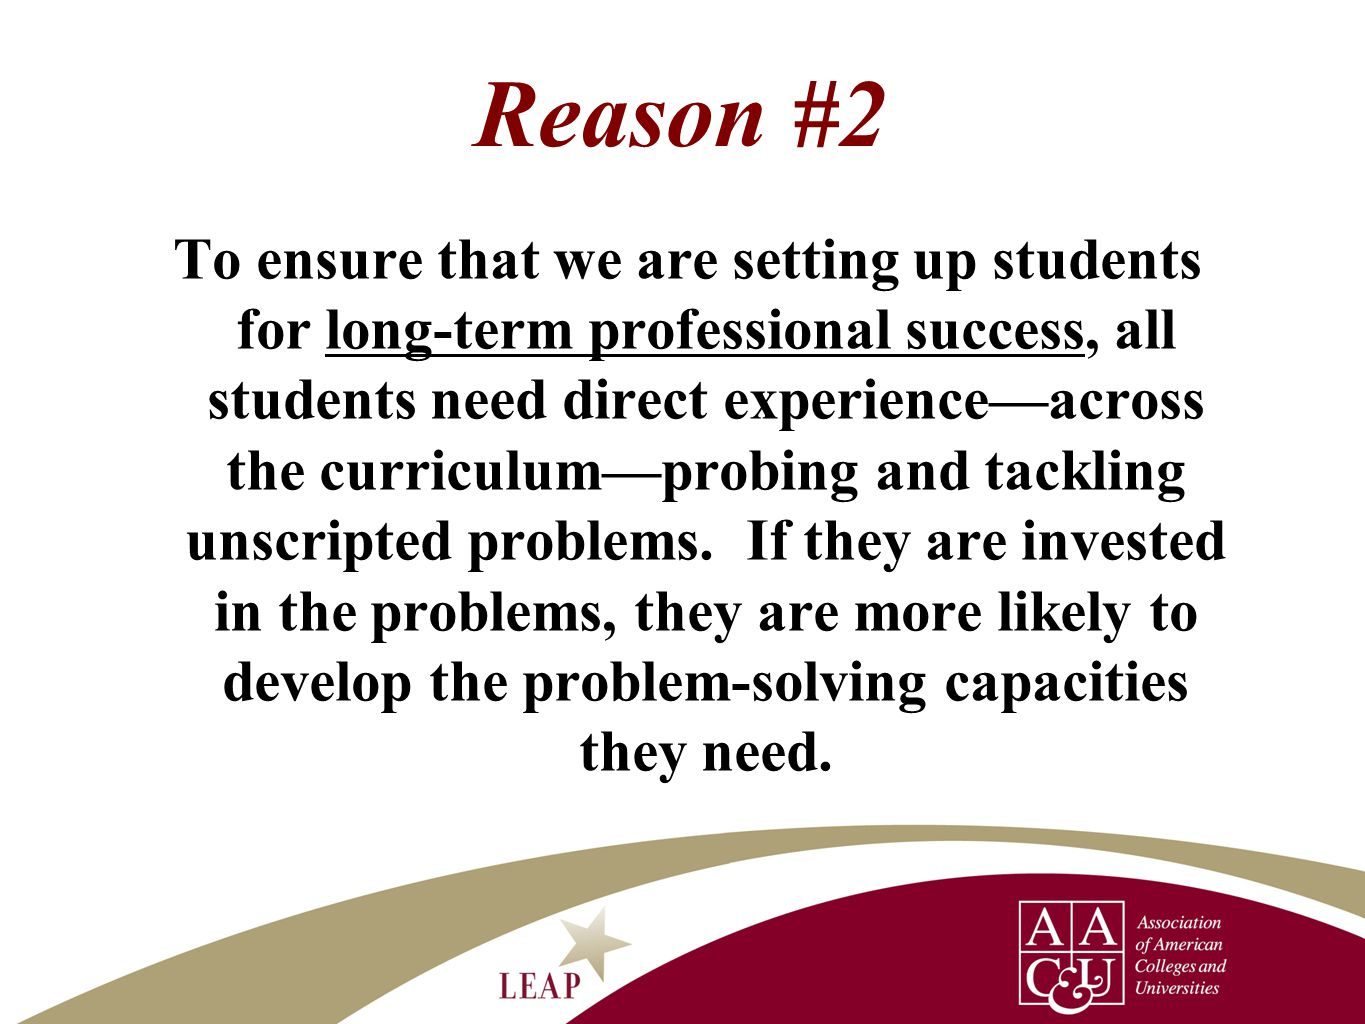 Reason #2 To ensure that we are setting up students for long-term professional success, all students need direct experience—across the curriculum—prob